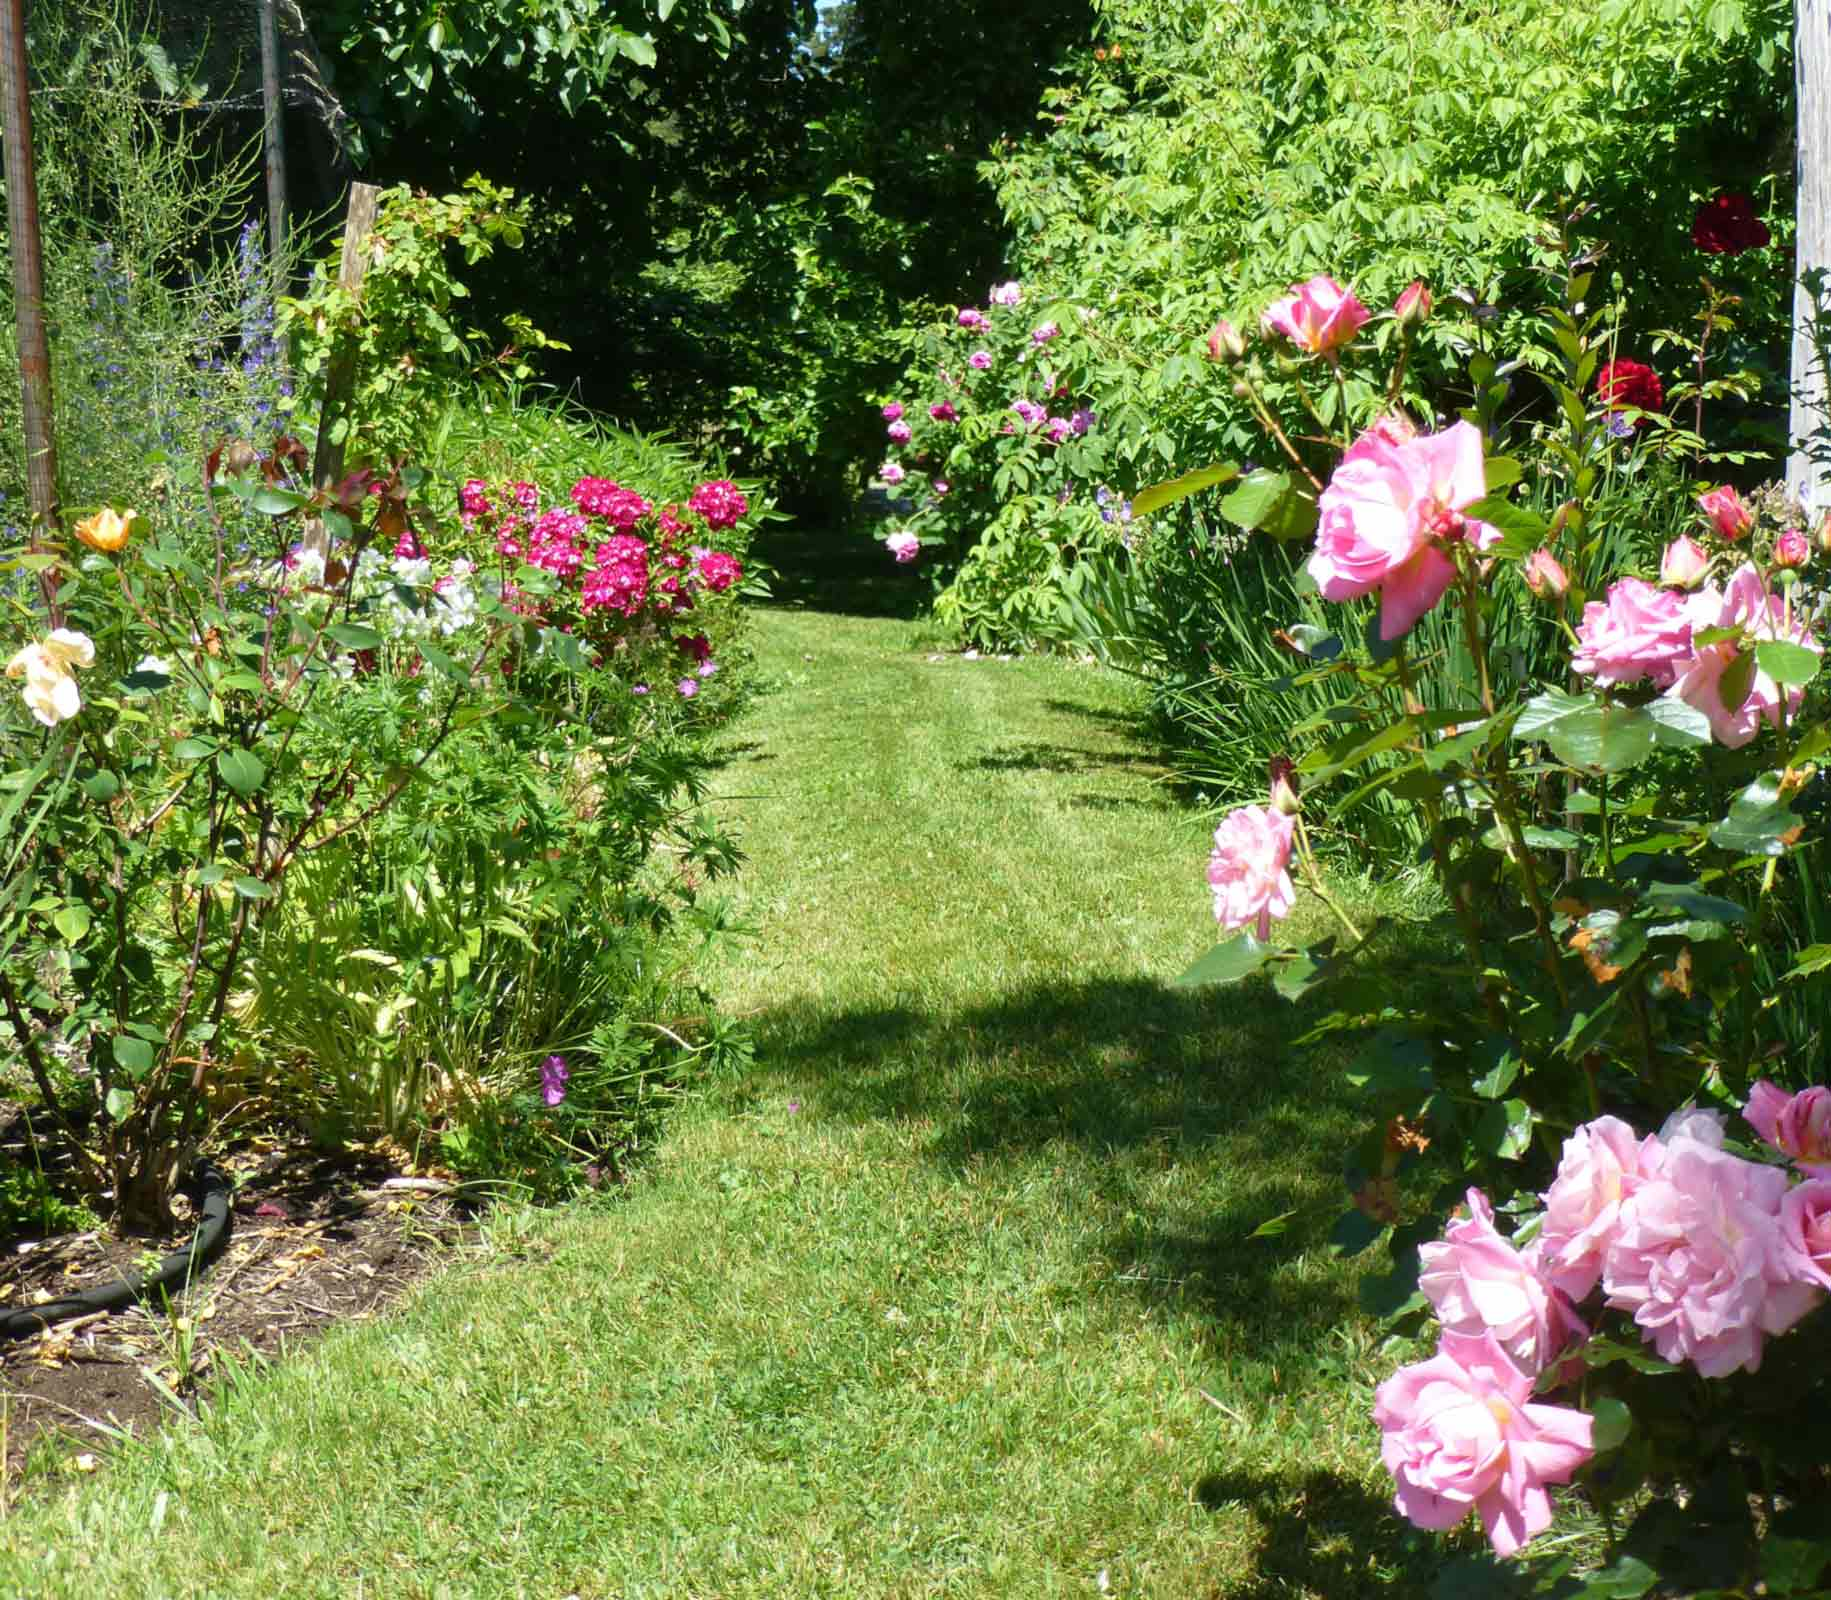 21st Denman Home & Garden Tour, June 13 – 14, 9:30 – 5:00